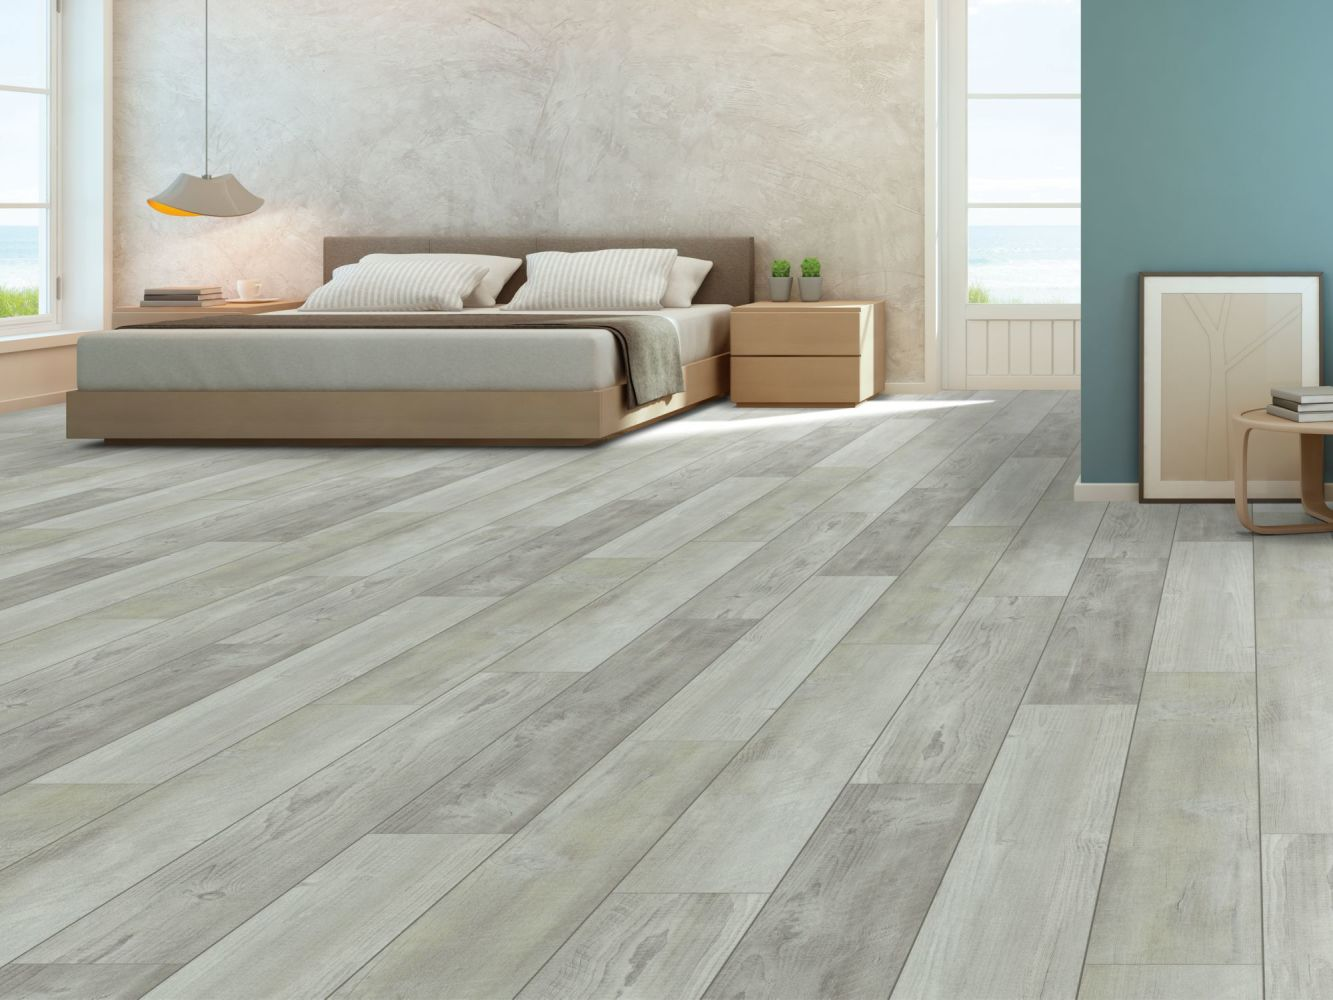 Shaw Floors Reality Homes Lava Beds Salvaged Pine 00554_110RH